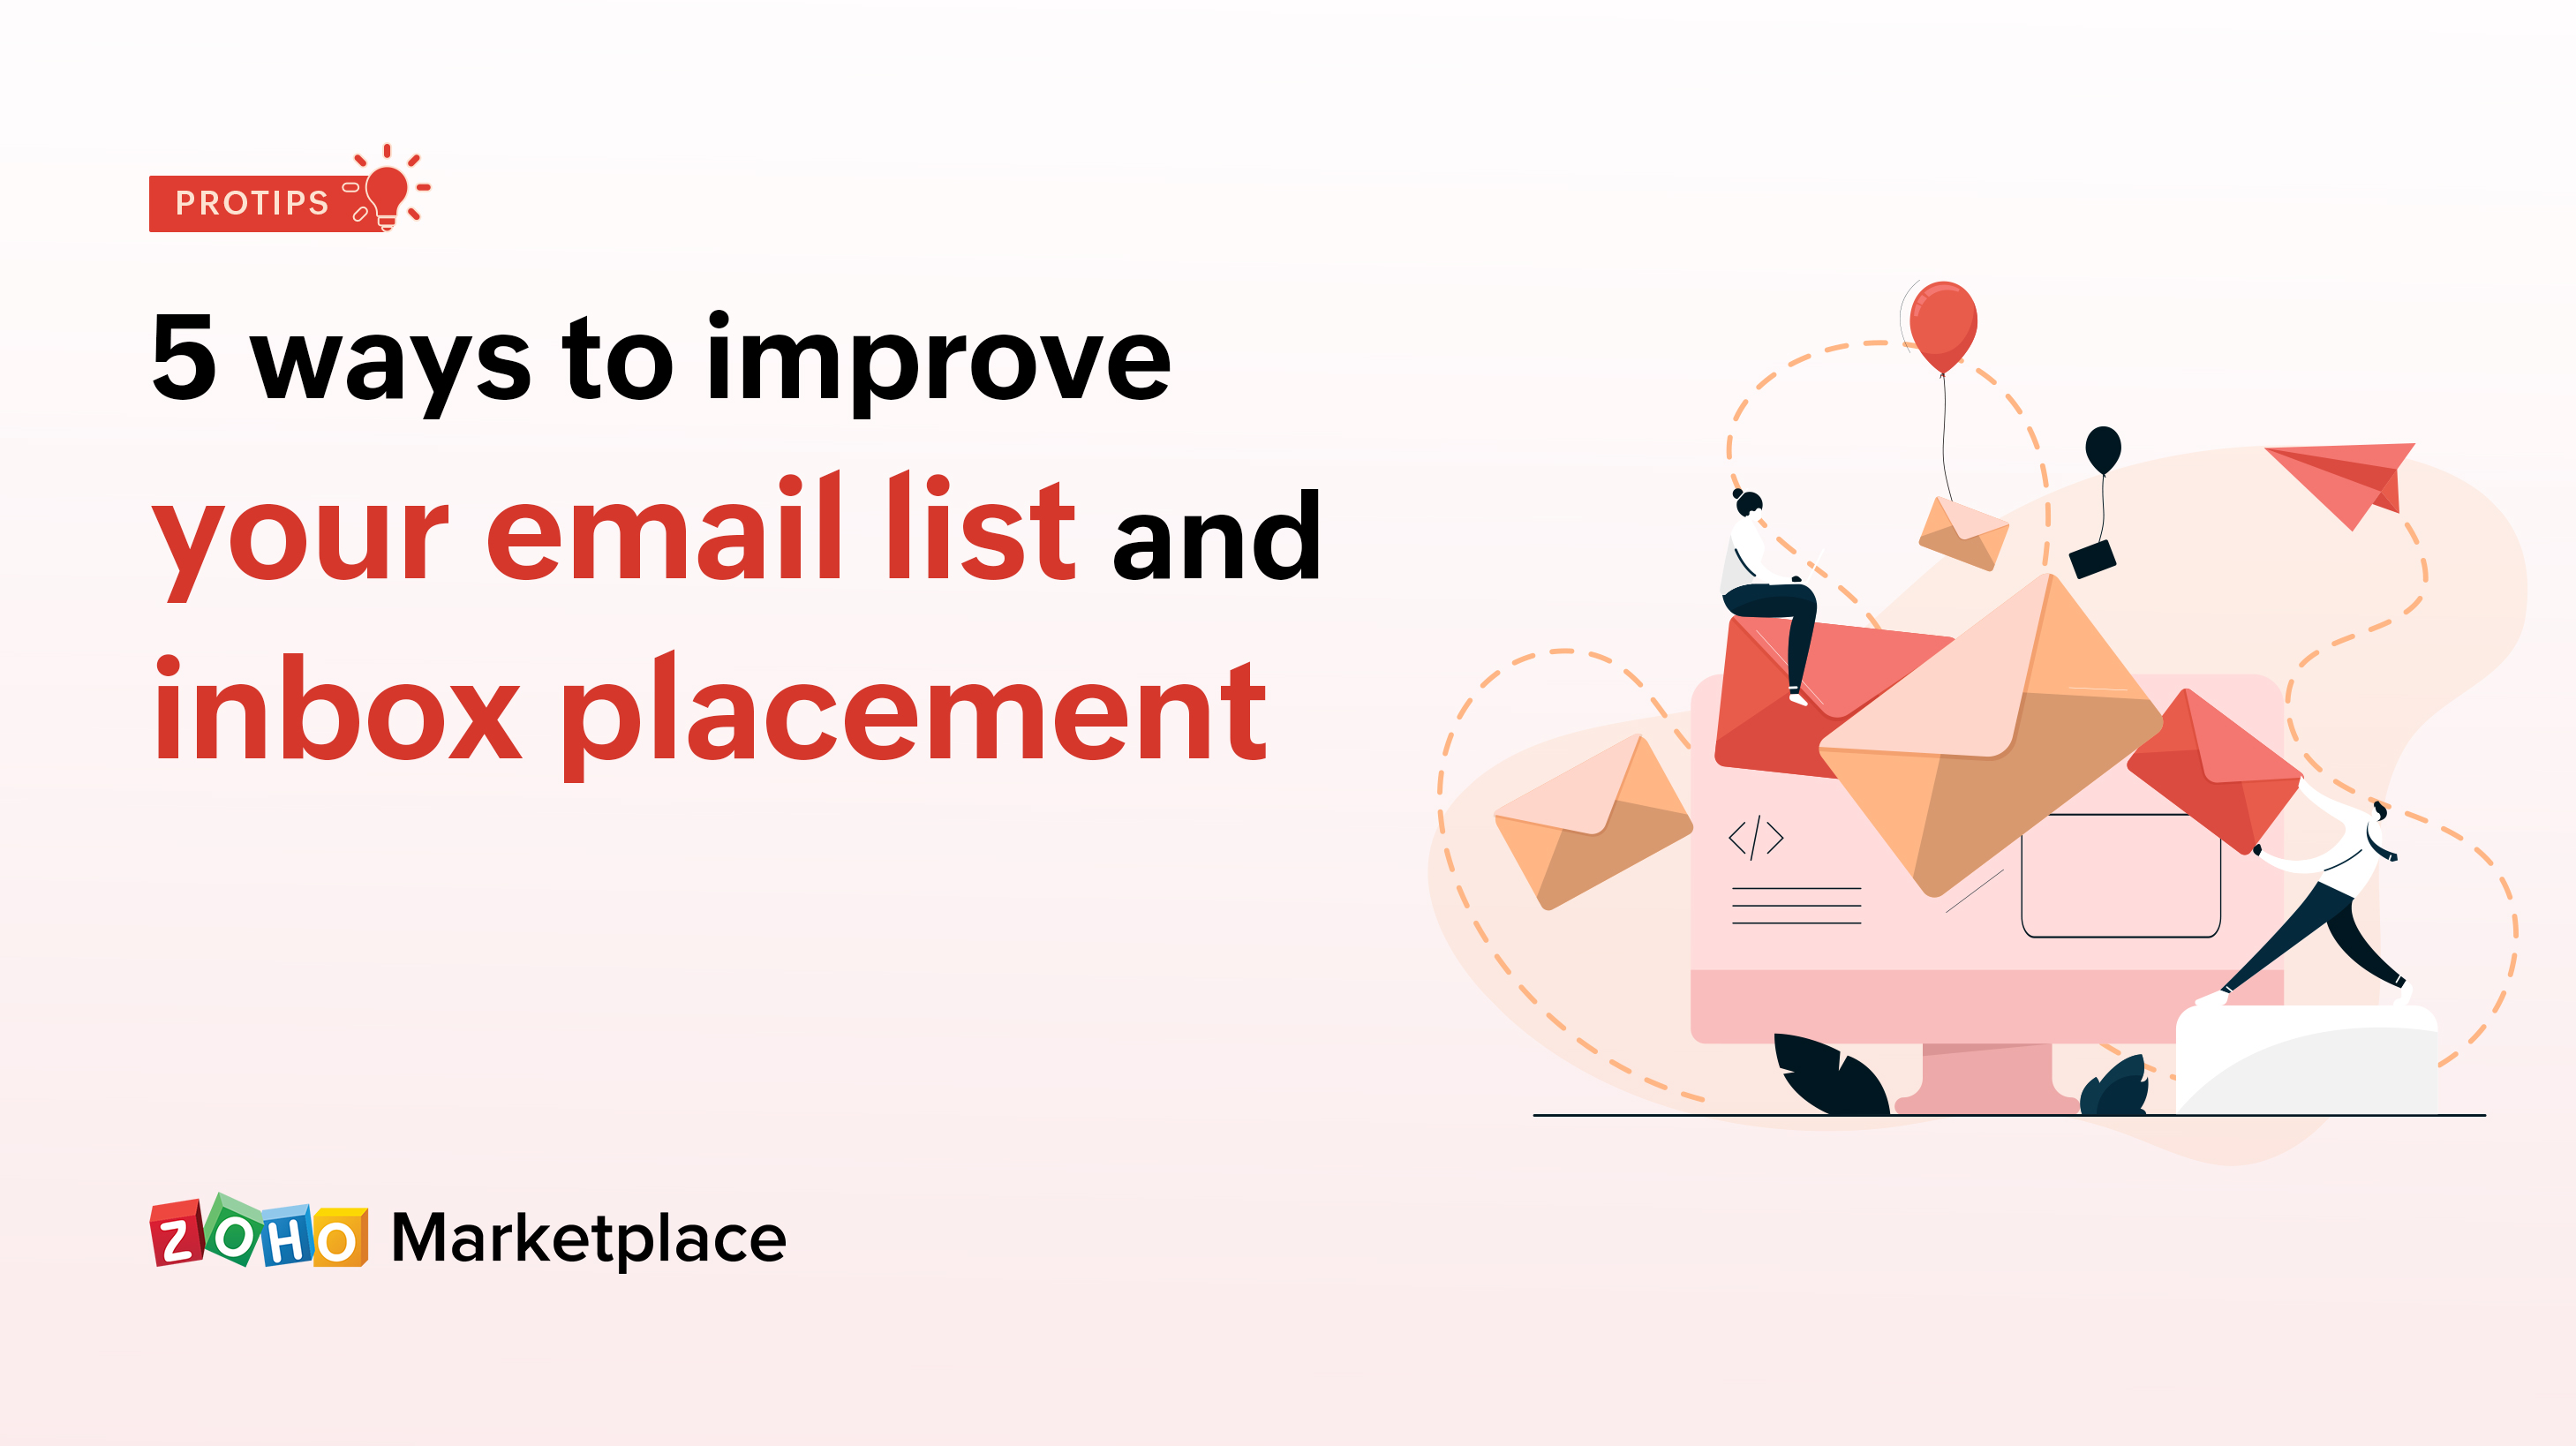 ProTips: 5 ways to improve your email list and inbox placement